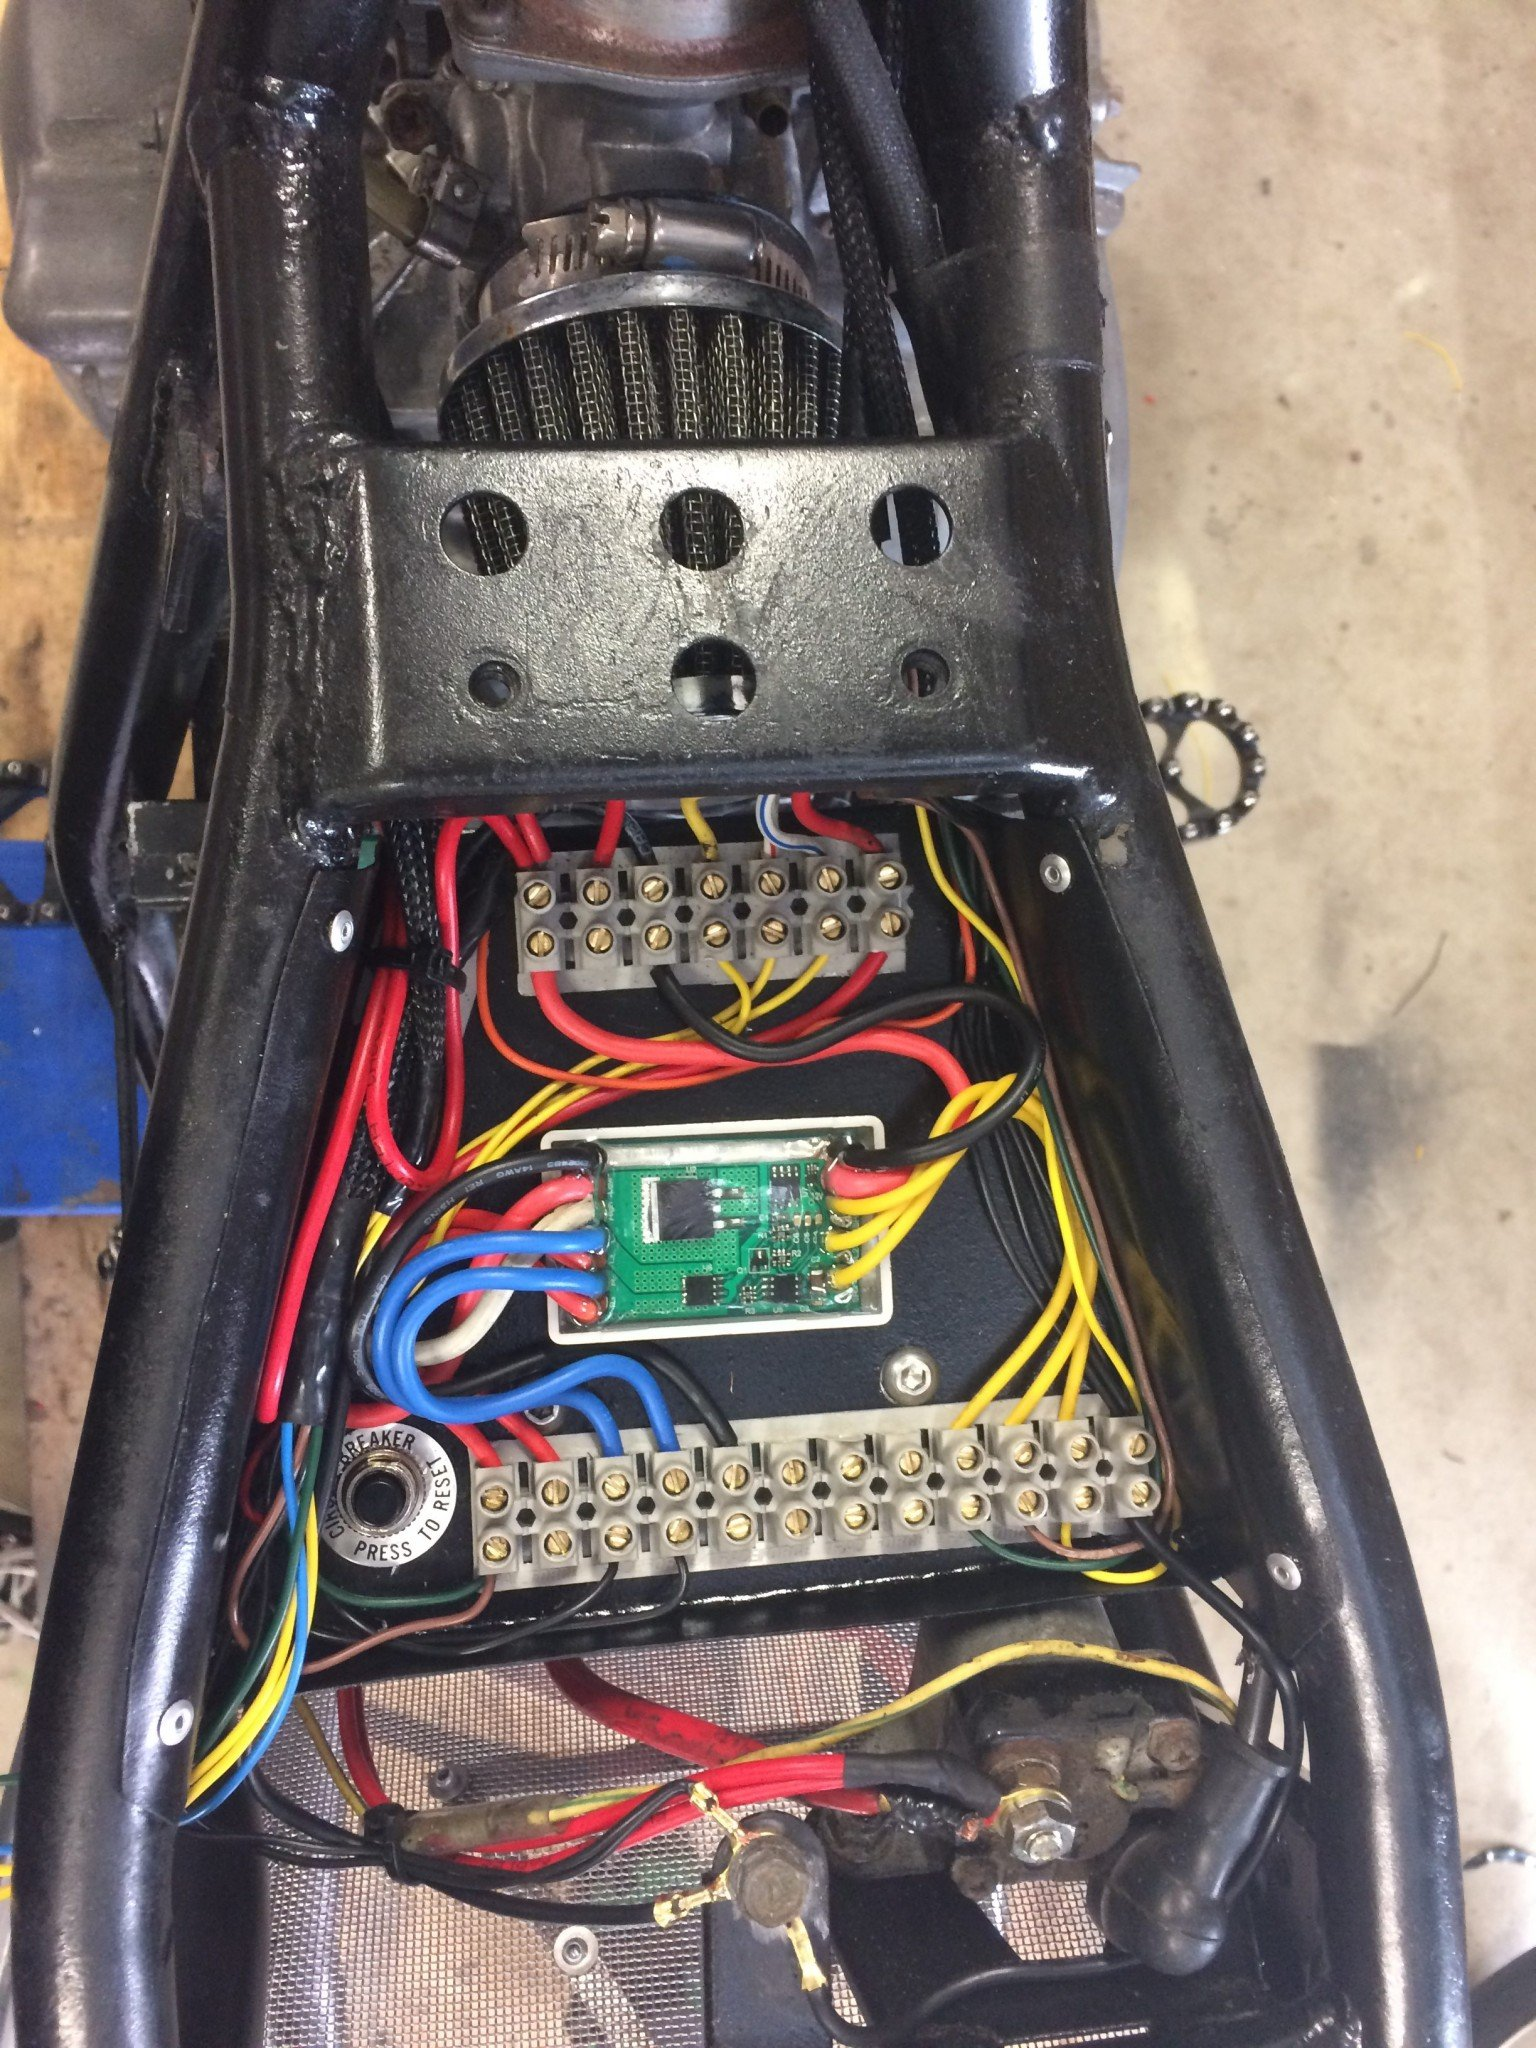 Motorcycle Electrics 101 Purpose Built Moto On A 1986 Honda Cmx450 Wiring Diagram Cafe Racer Tray Led Flasher Unit Solid State Switching